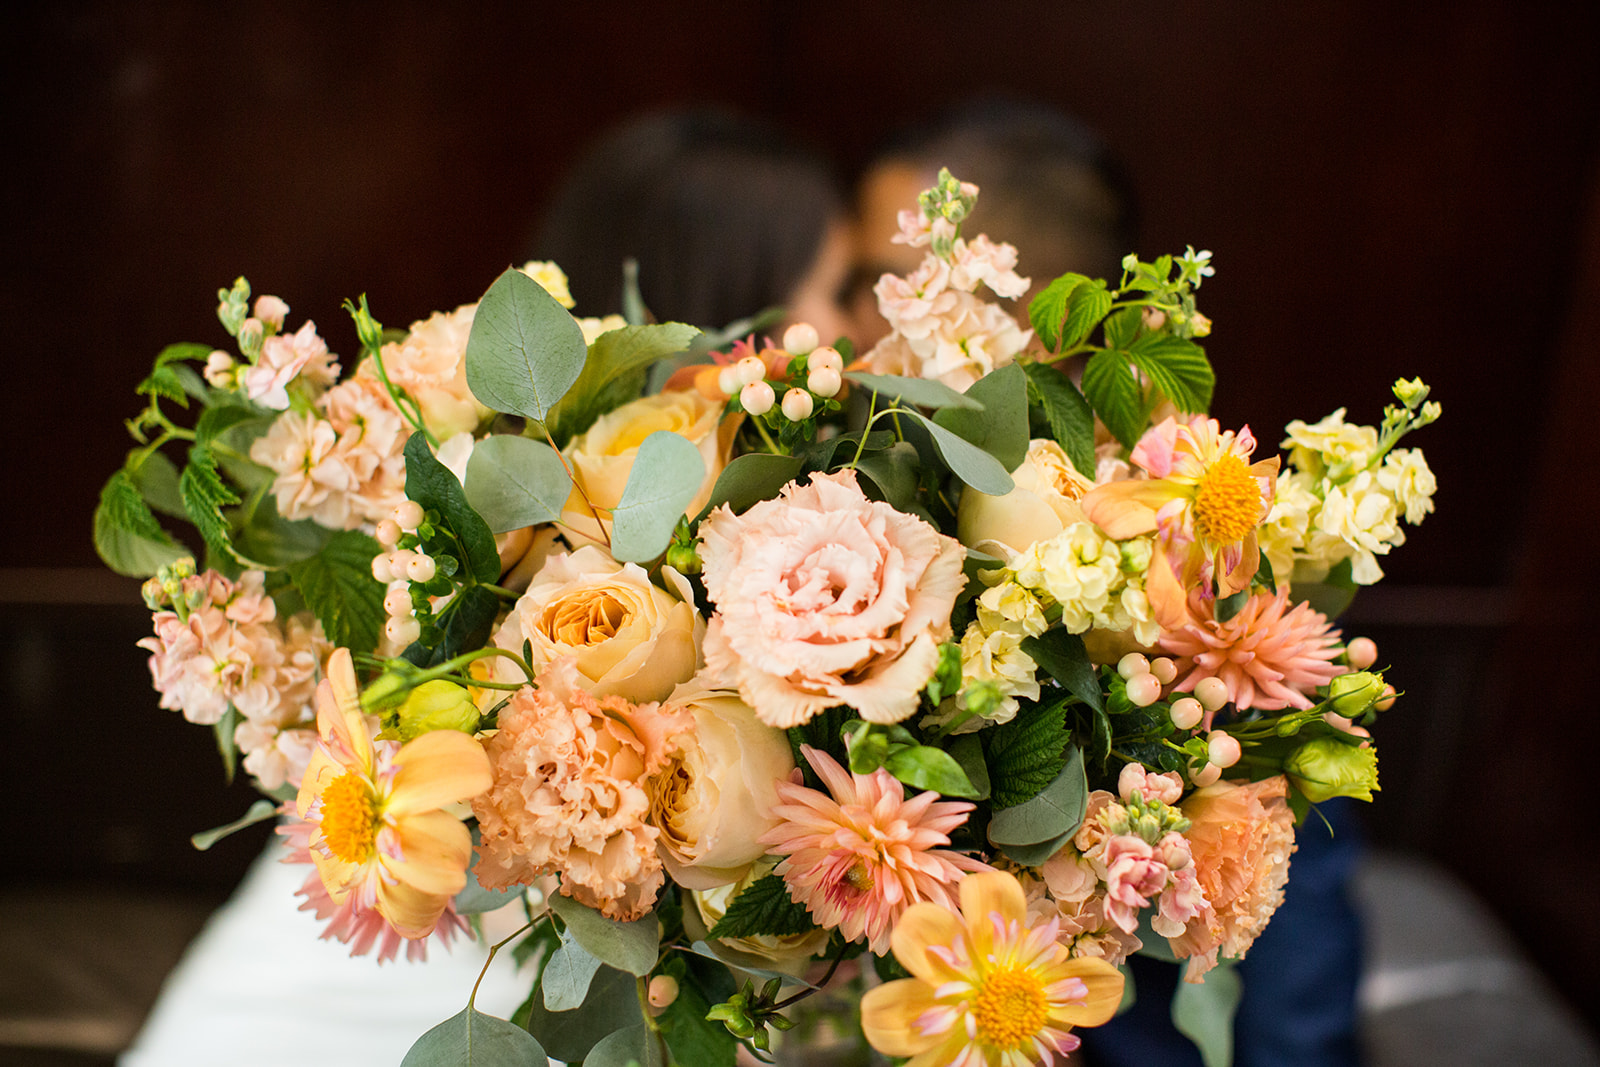 Coral, peach and grey bridal bouquet featuring local dahlias for an Autumn Wedding at Chihuly Gardens and Glass | Flora Nova Design